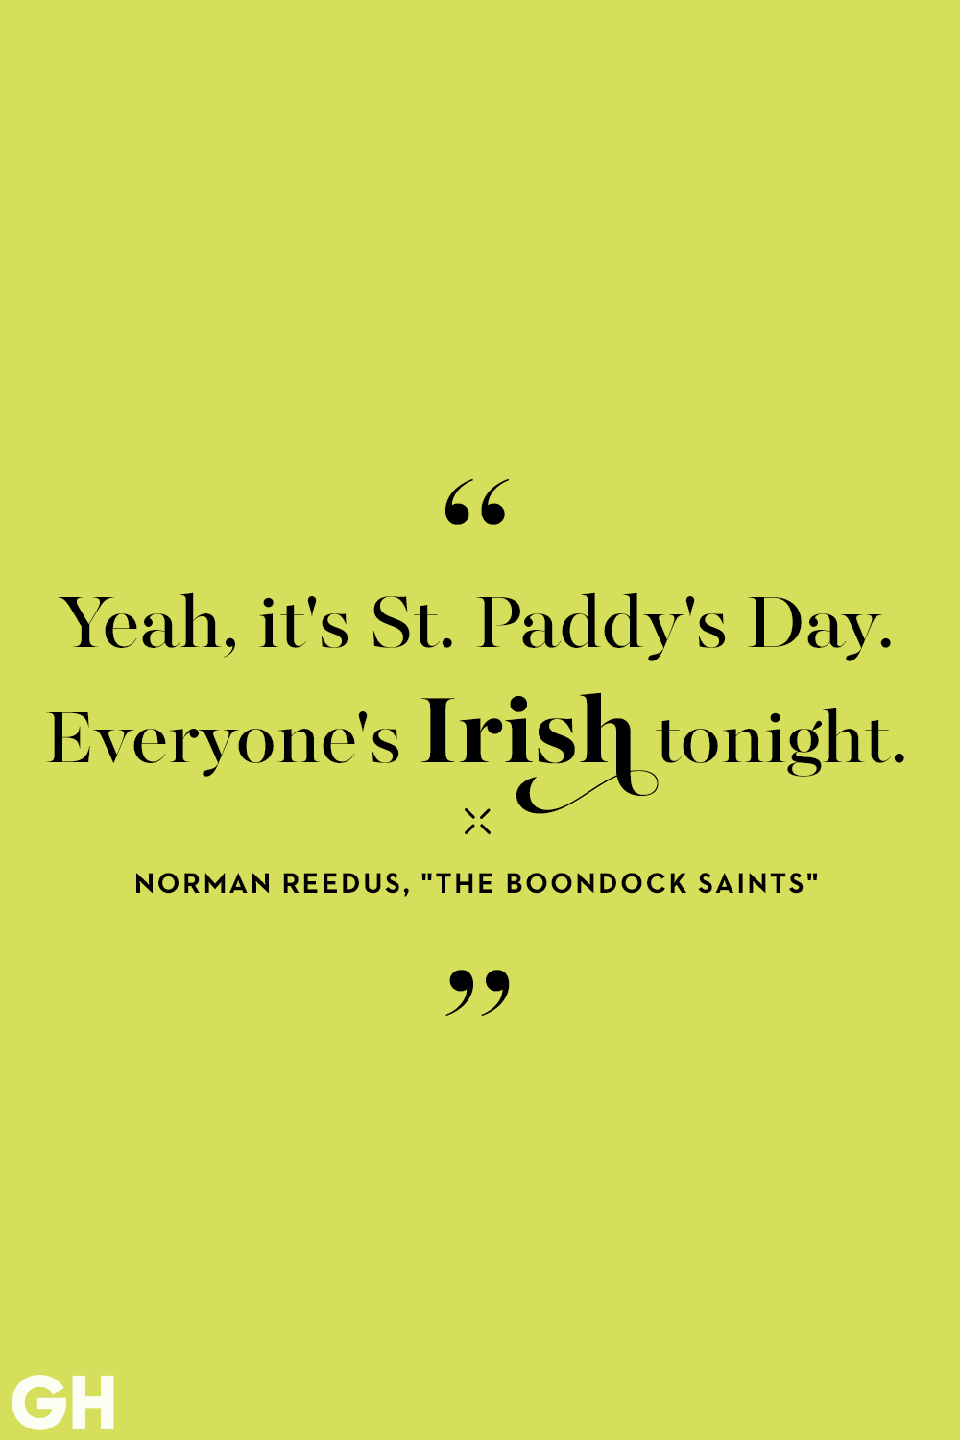 <p>Yeah, it's St. Paddy's Day. Everyone's Irish tonight. </p>